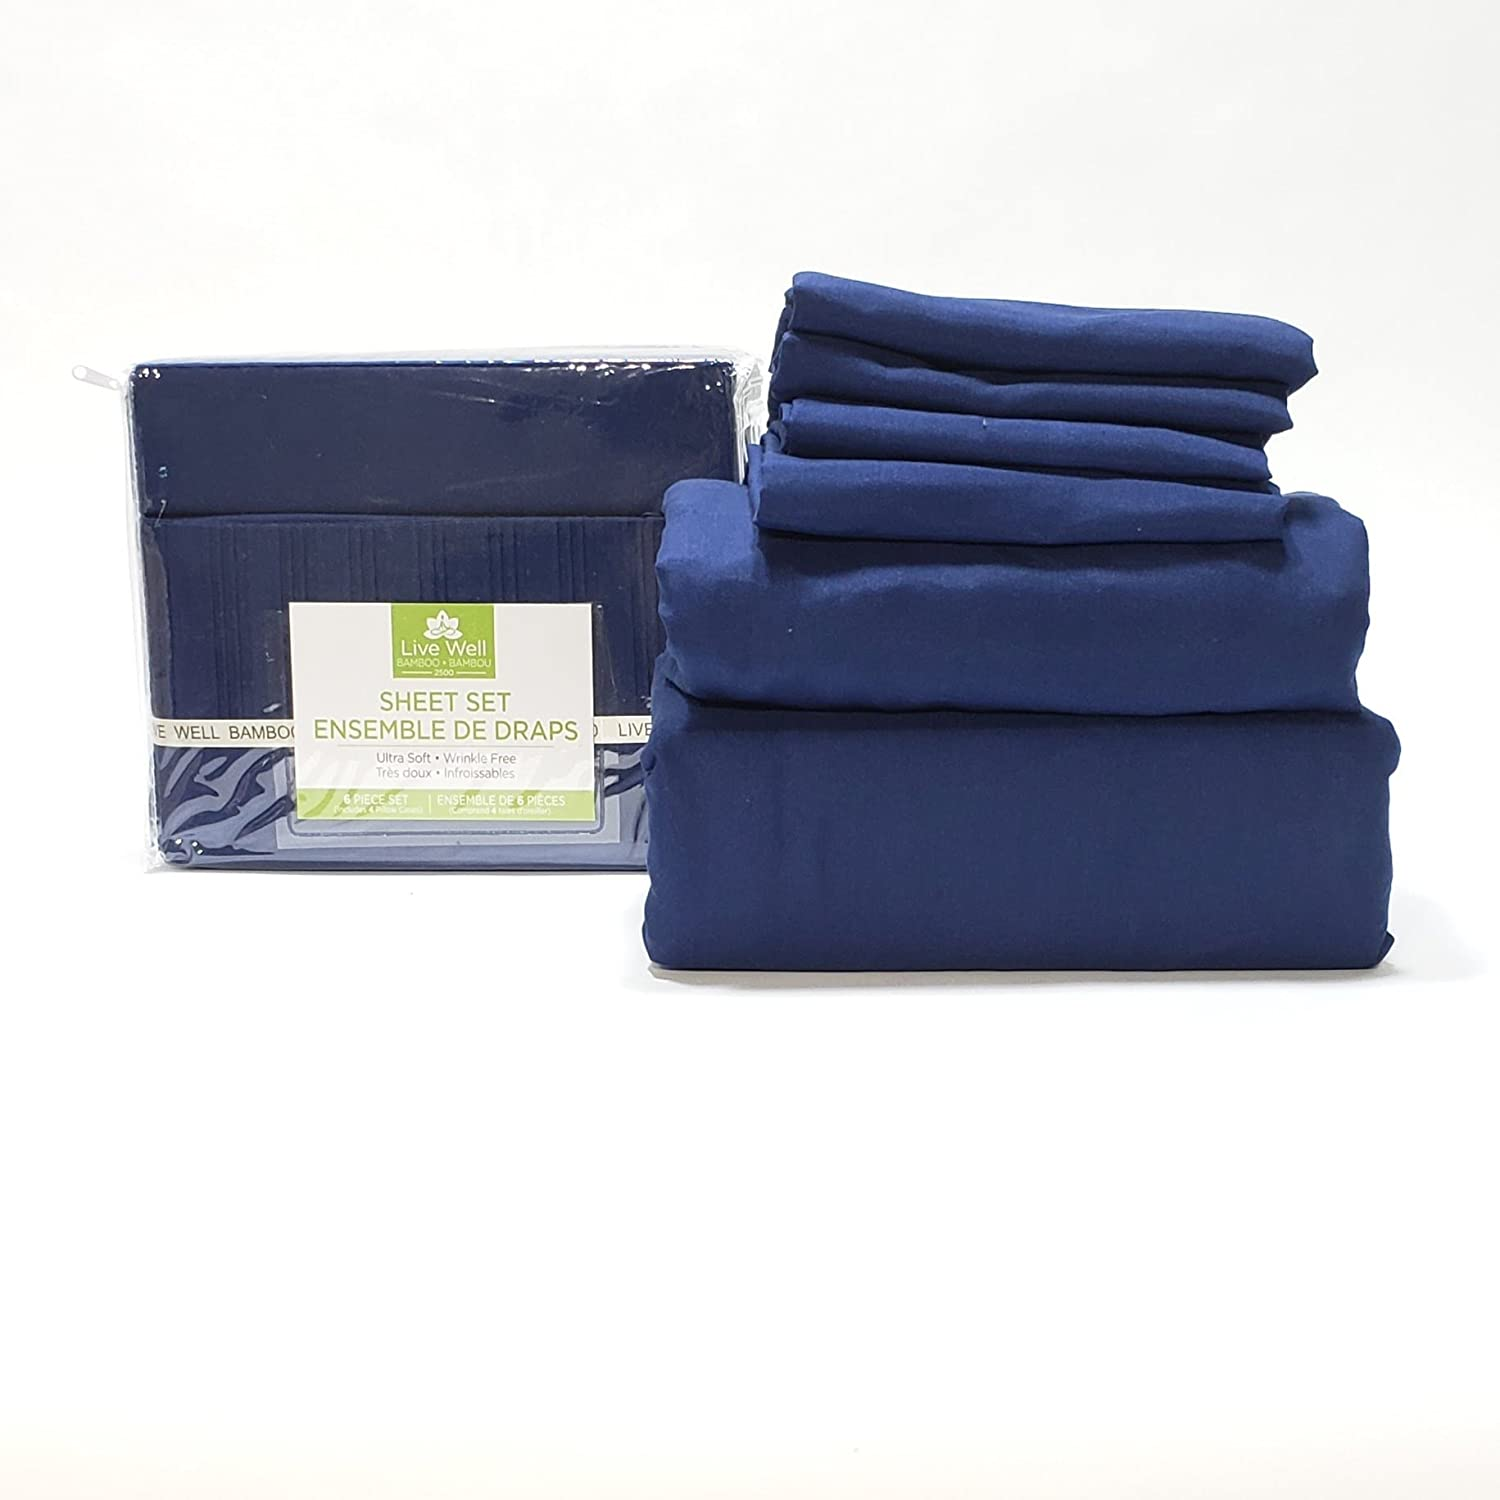 Live Well Bamboo's Ultra Soft, Wrinkle Free, 6 Piece Light Weight Sheet Set (Black, Double/Full)